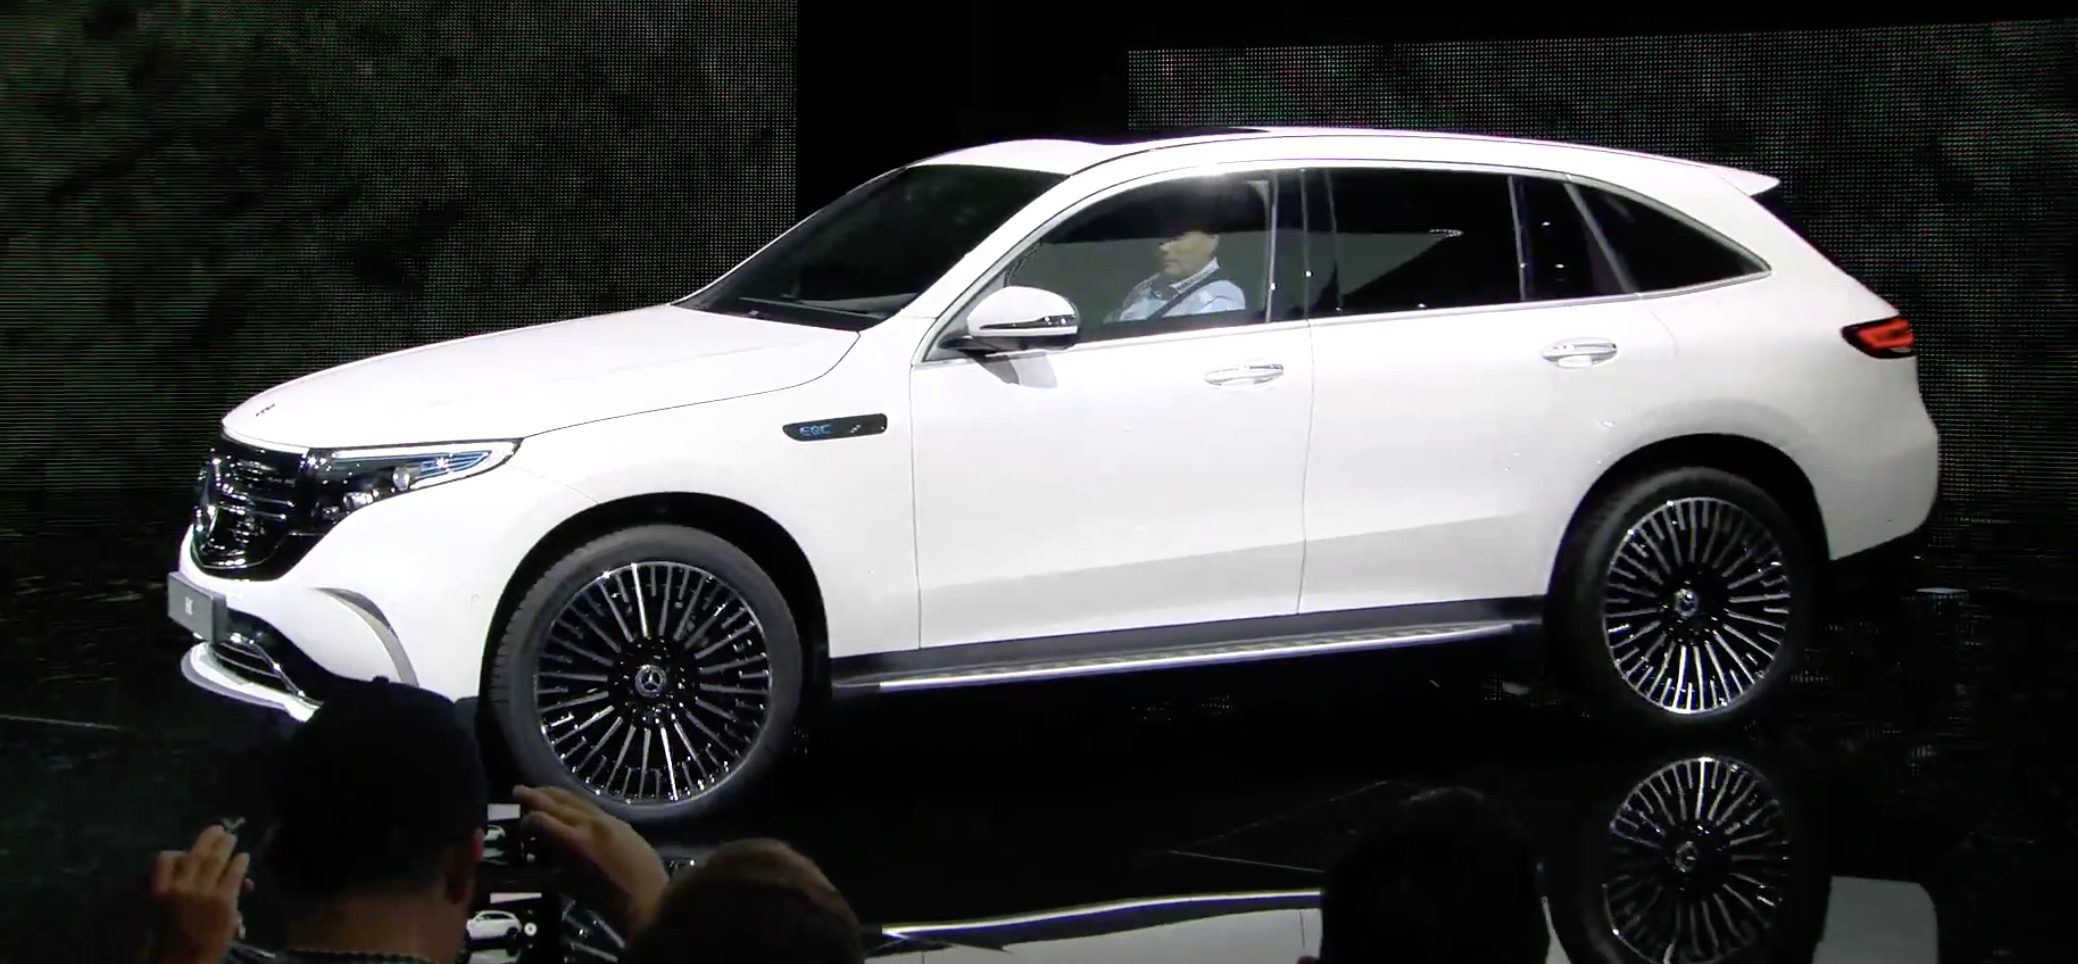 Mercedes-Benz reportedly delays EQC electric SUV volume deliveries to November